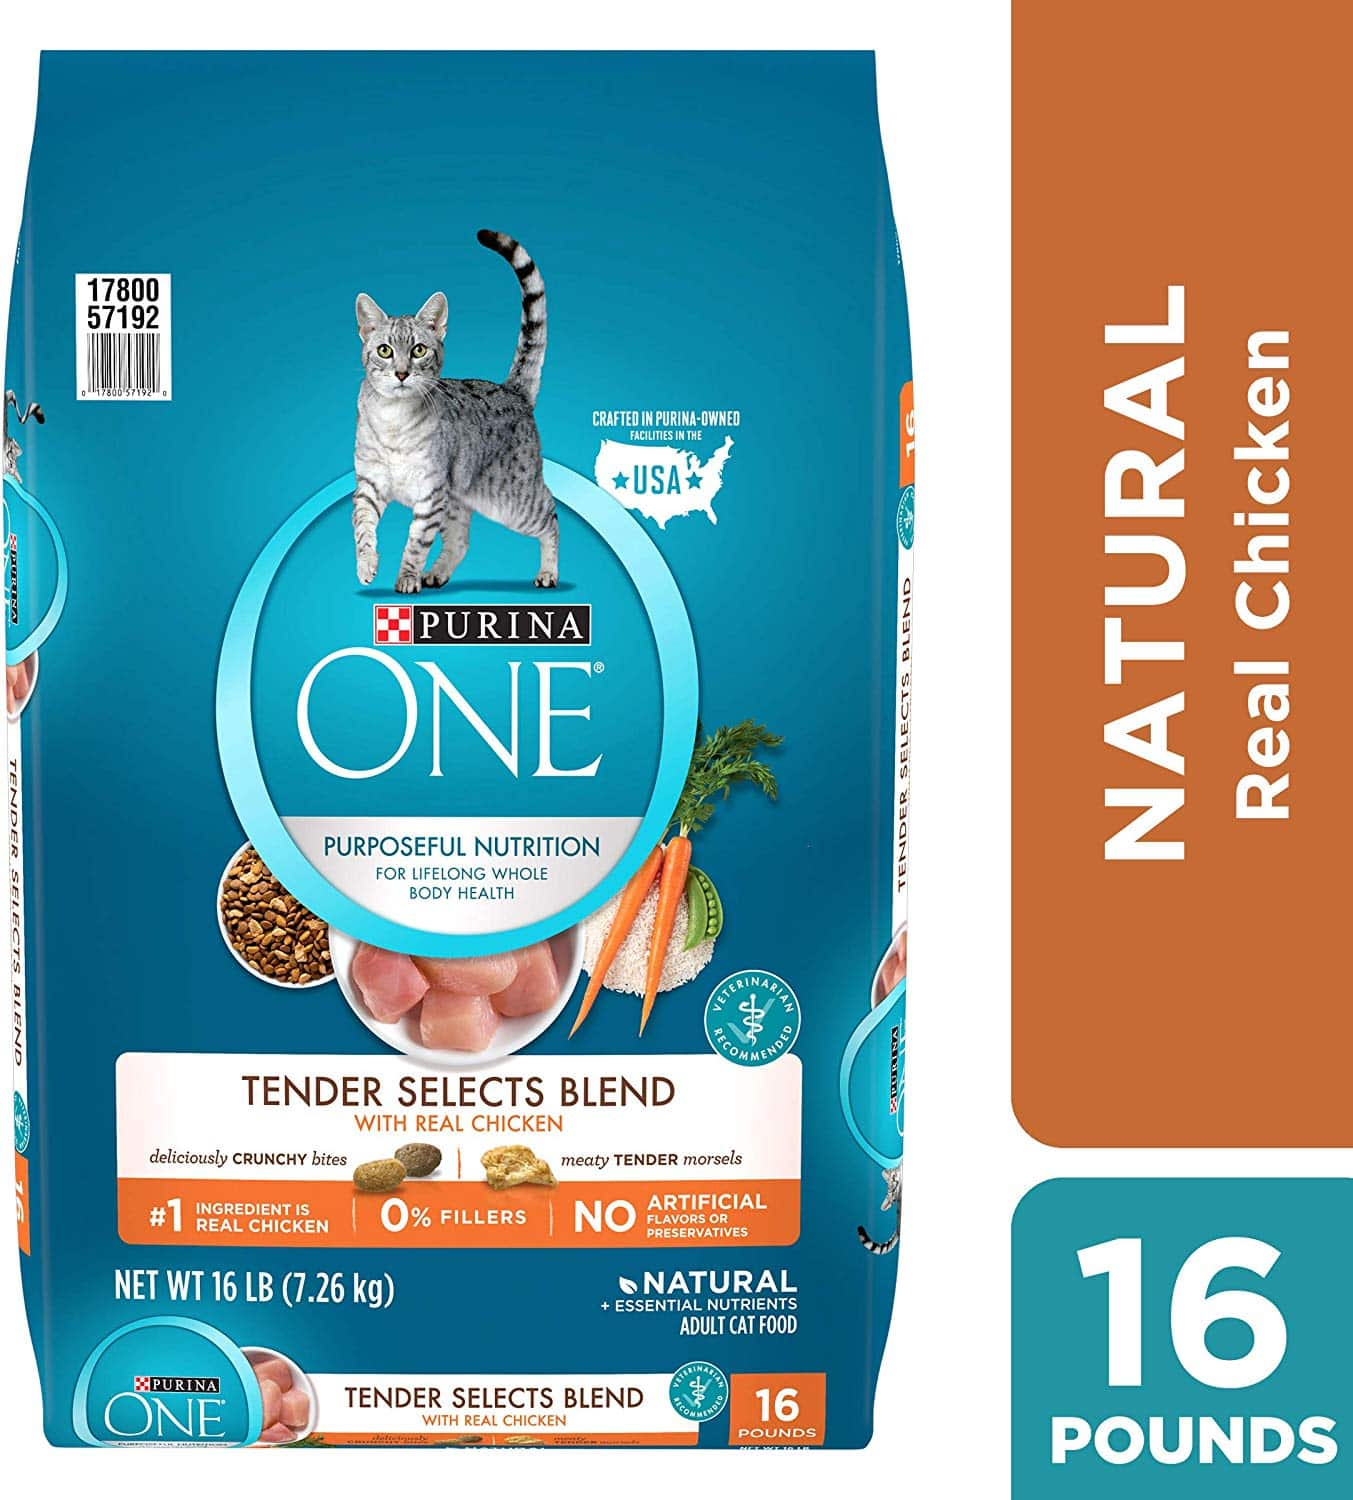 16lb Bag of Purina ONE Tender Selects Blend Adult Dry Cat Food $15.46 with Subscribe & Save + Free Shipping